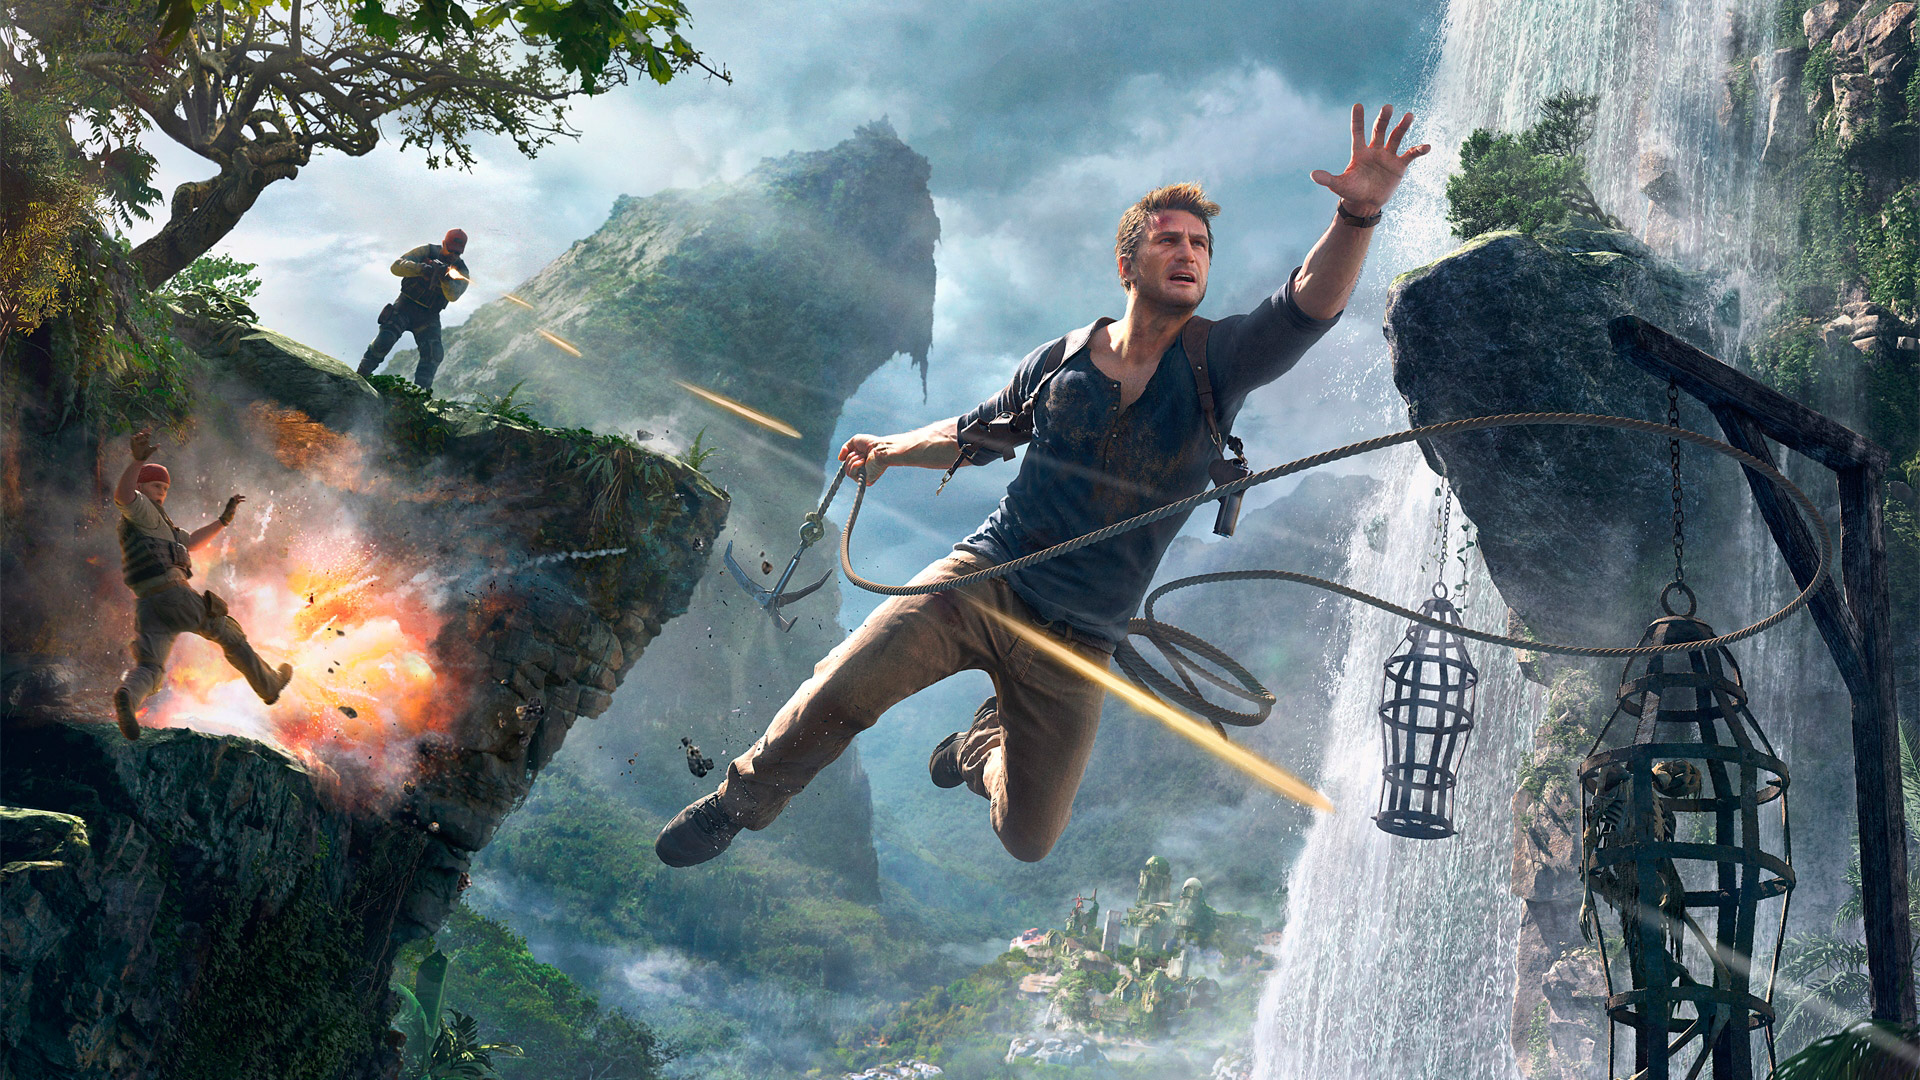 Free Uncharted 4: A Thief's End Wallpaper in 1920x1080